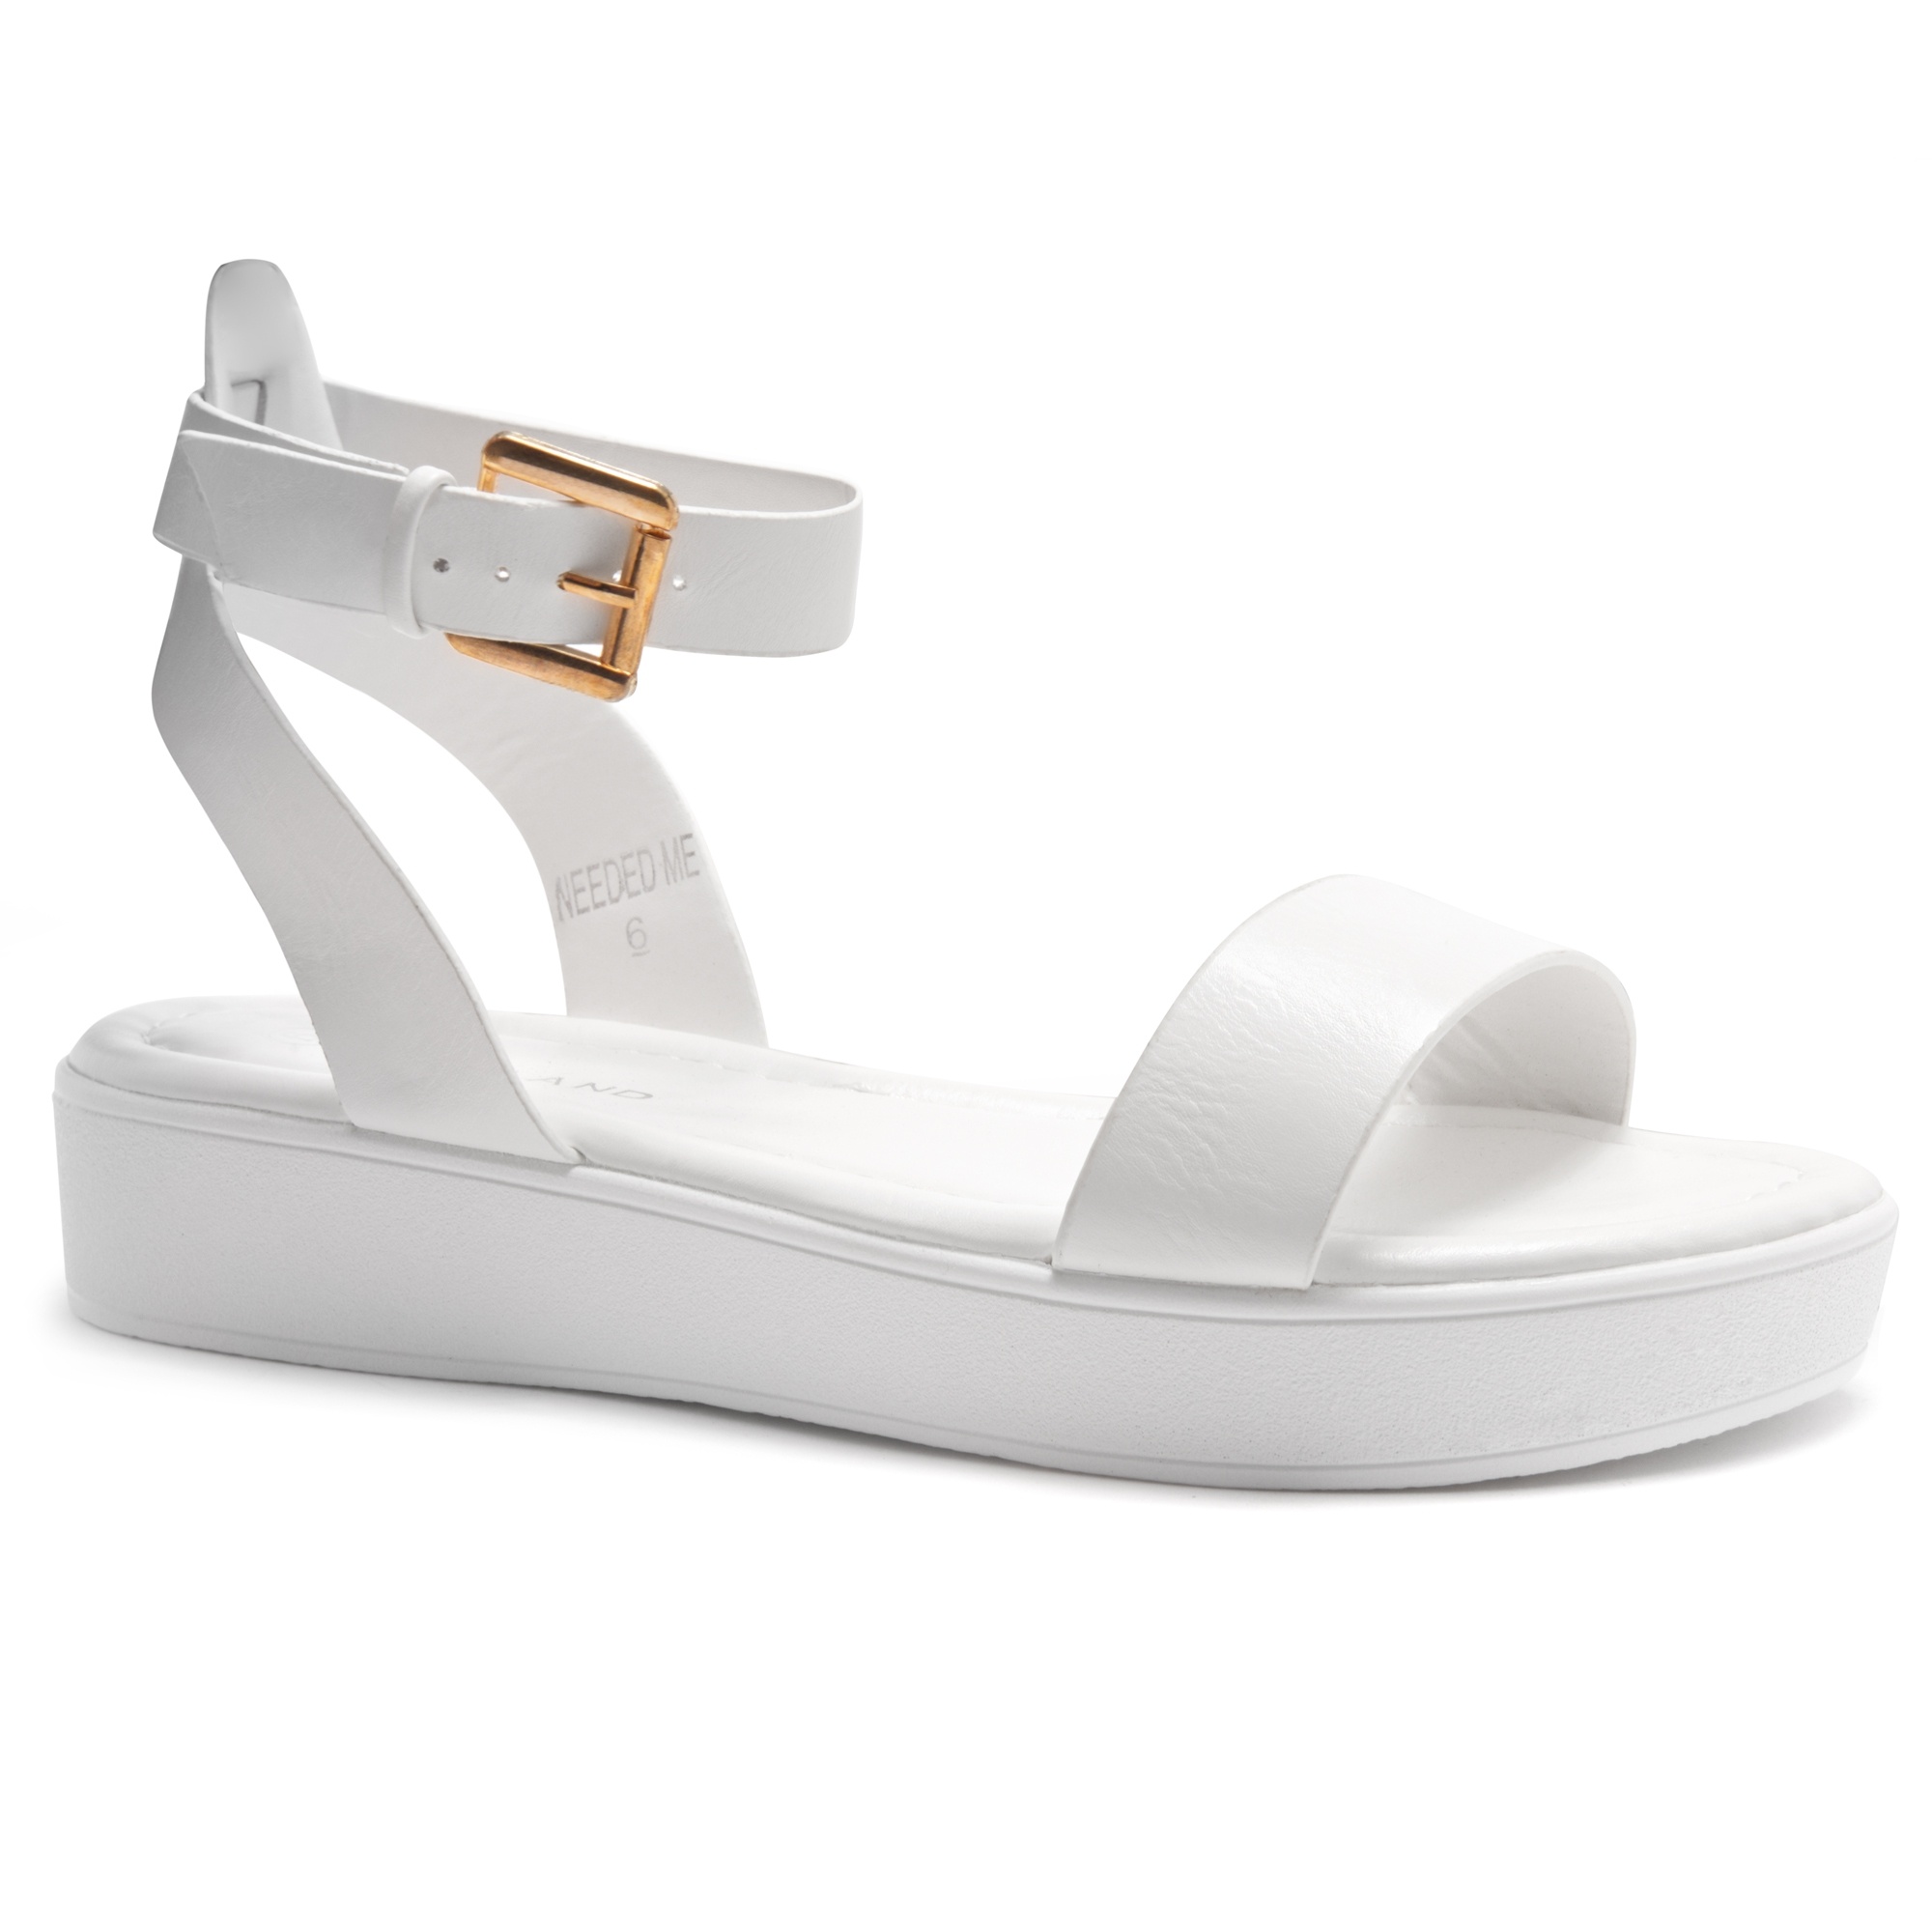 Me Herstyle Needed Strap Sandalwhitewhite Platform Ankle Flat sthCrdQ